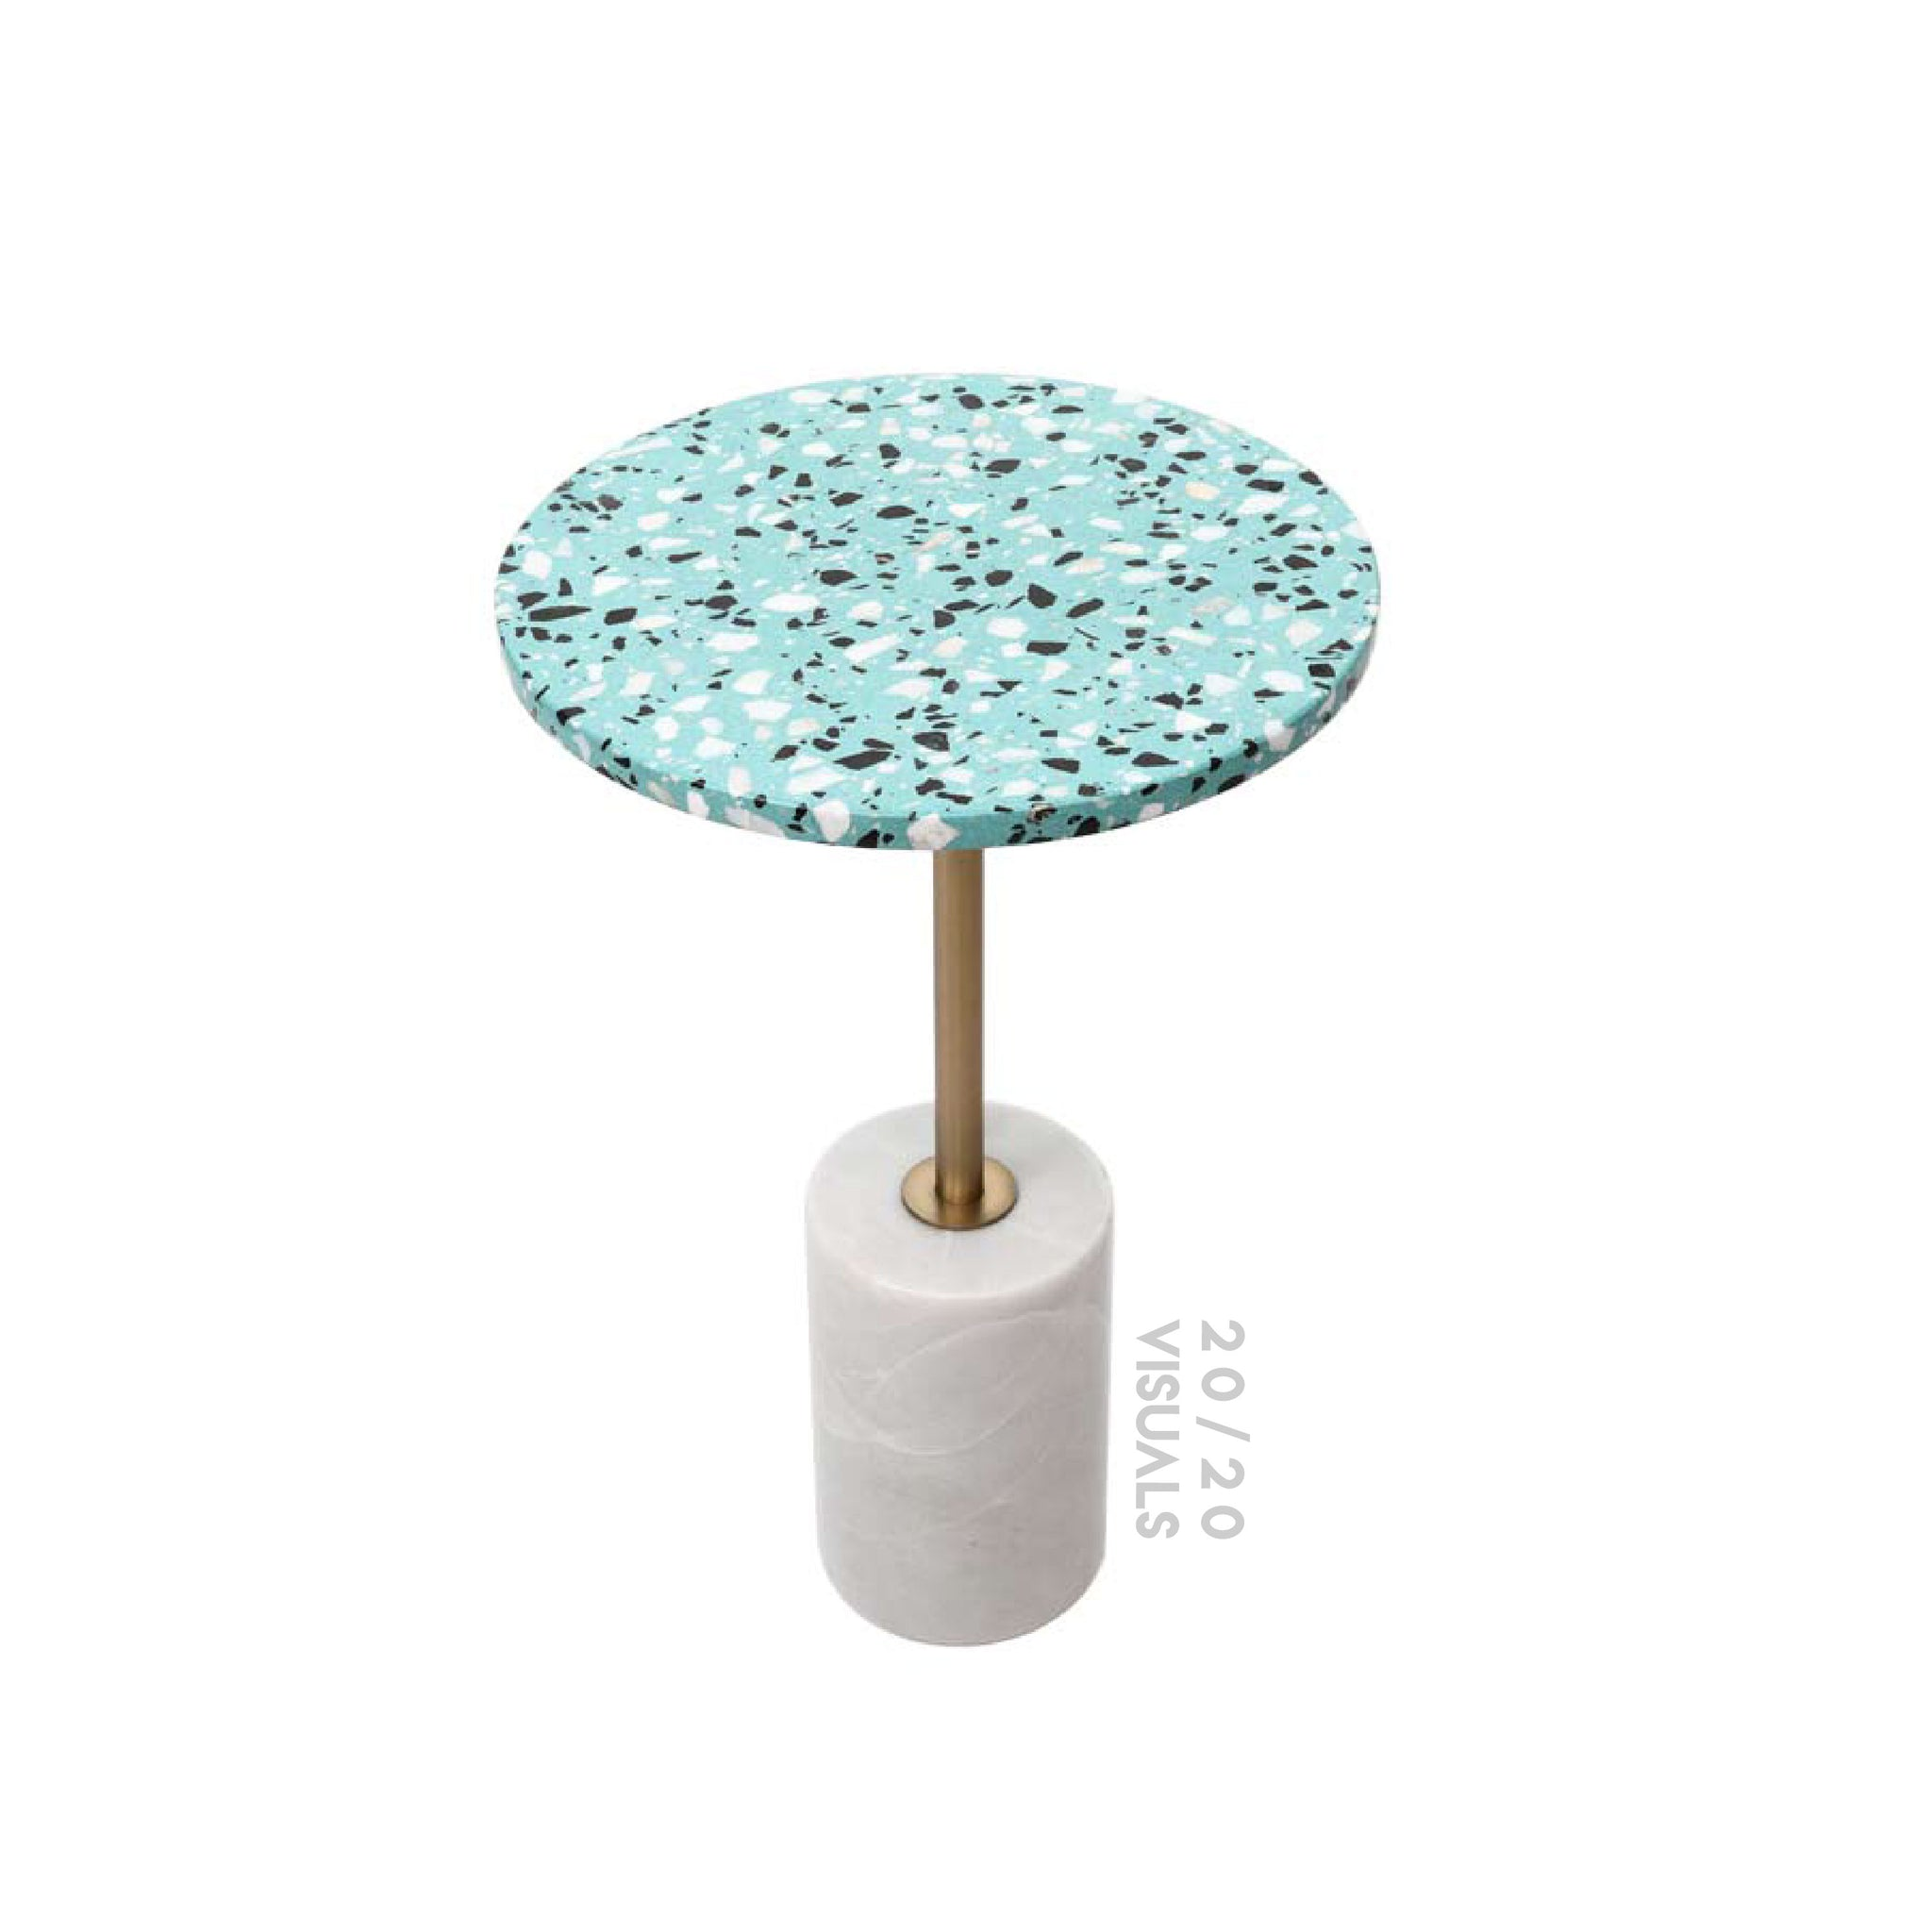 Terrazzo-top Cafe Table